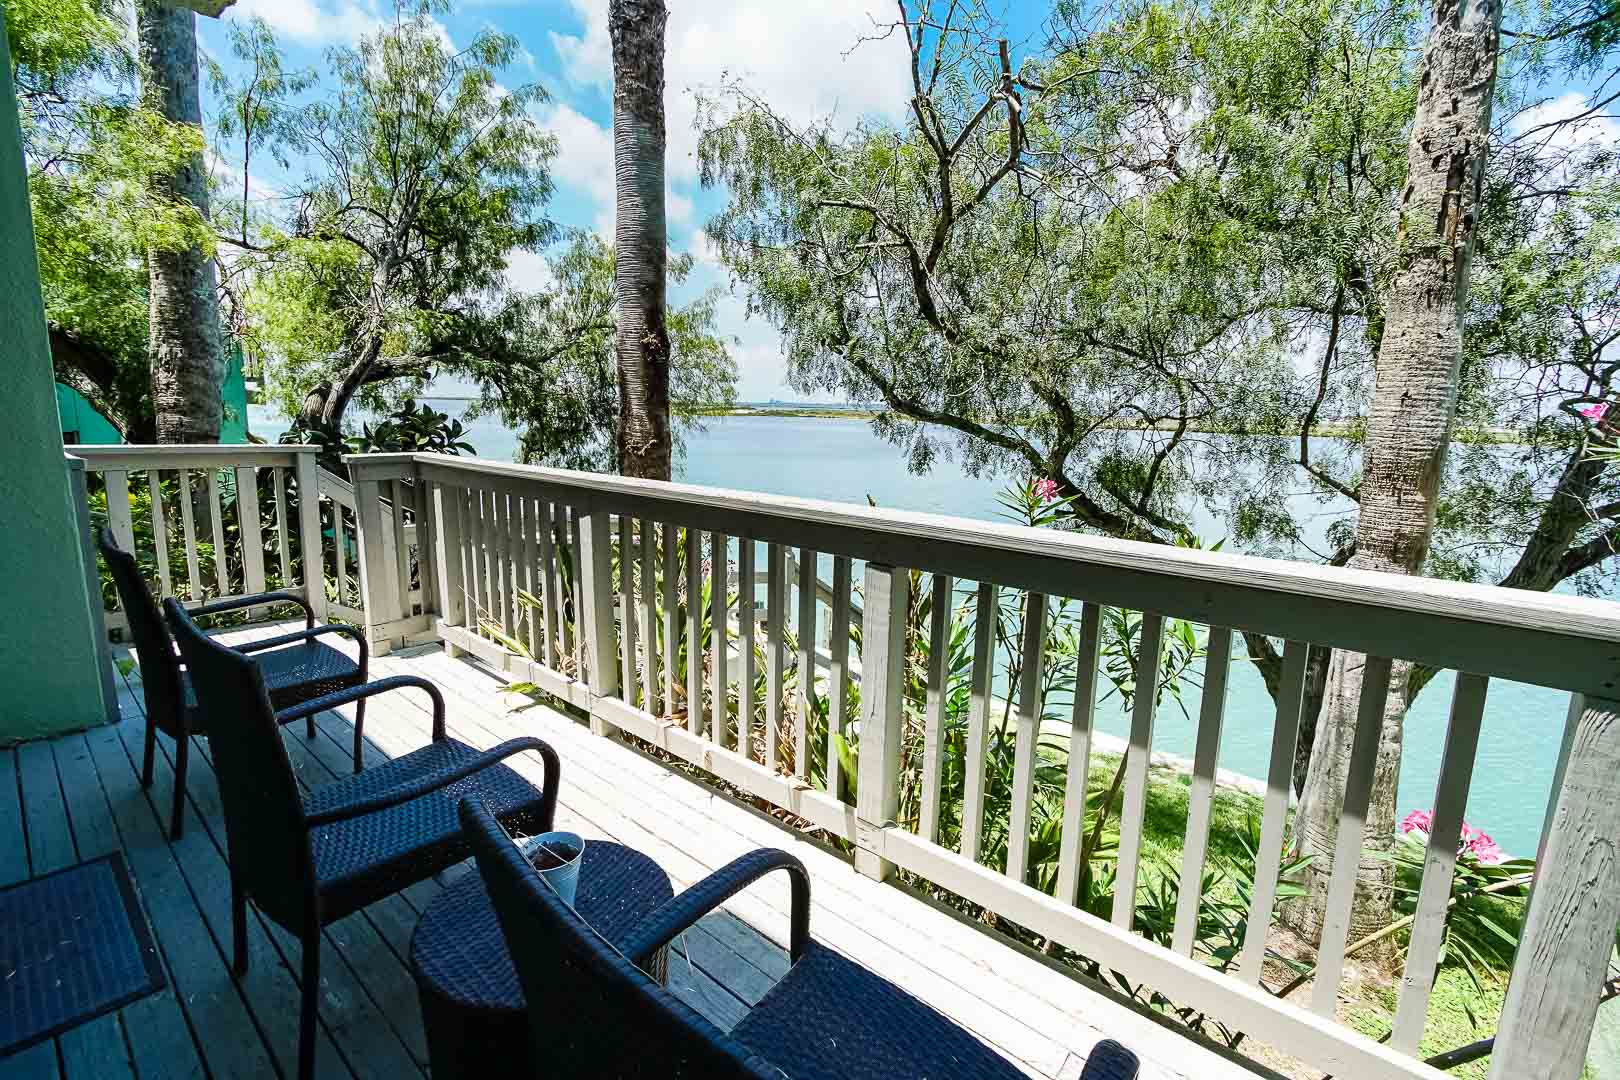 A relaxing balcony view at VRI's Puente Vista Resort in Texas.